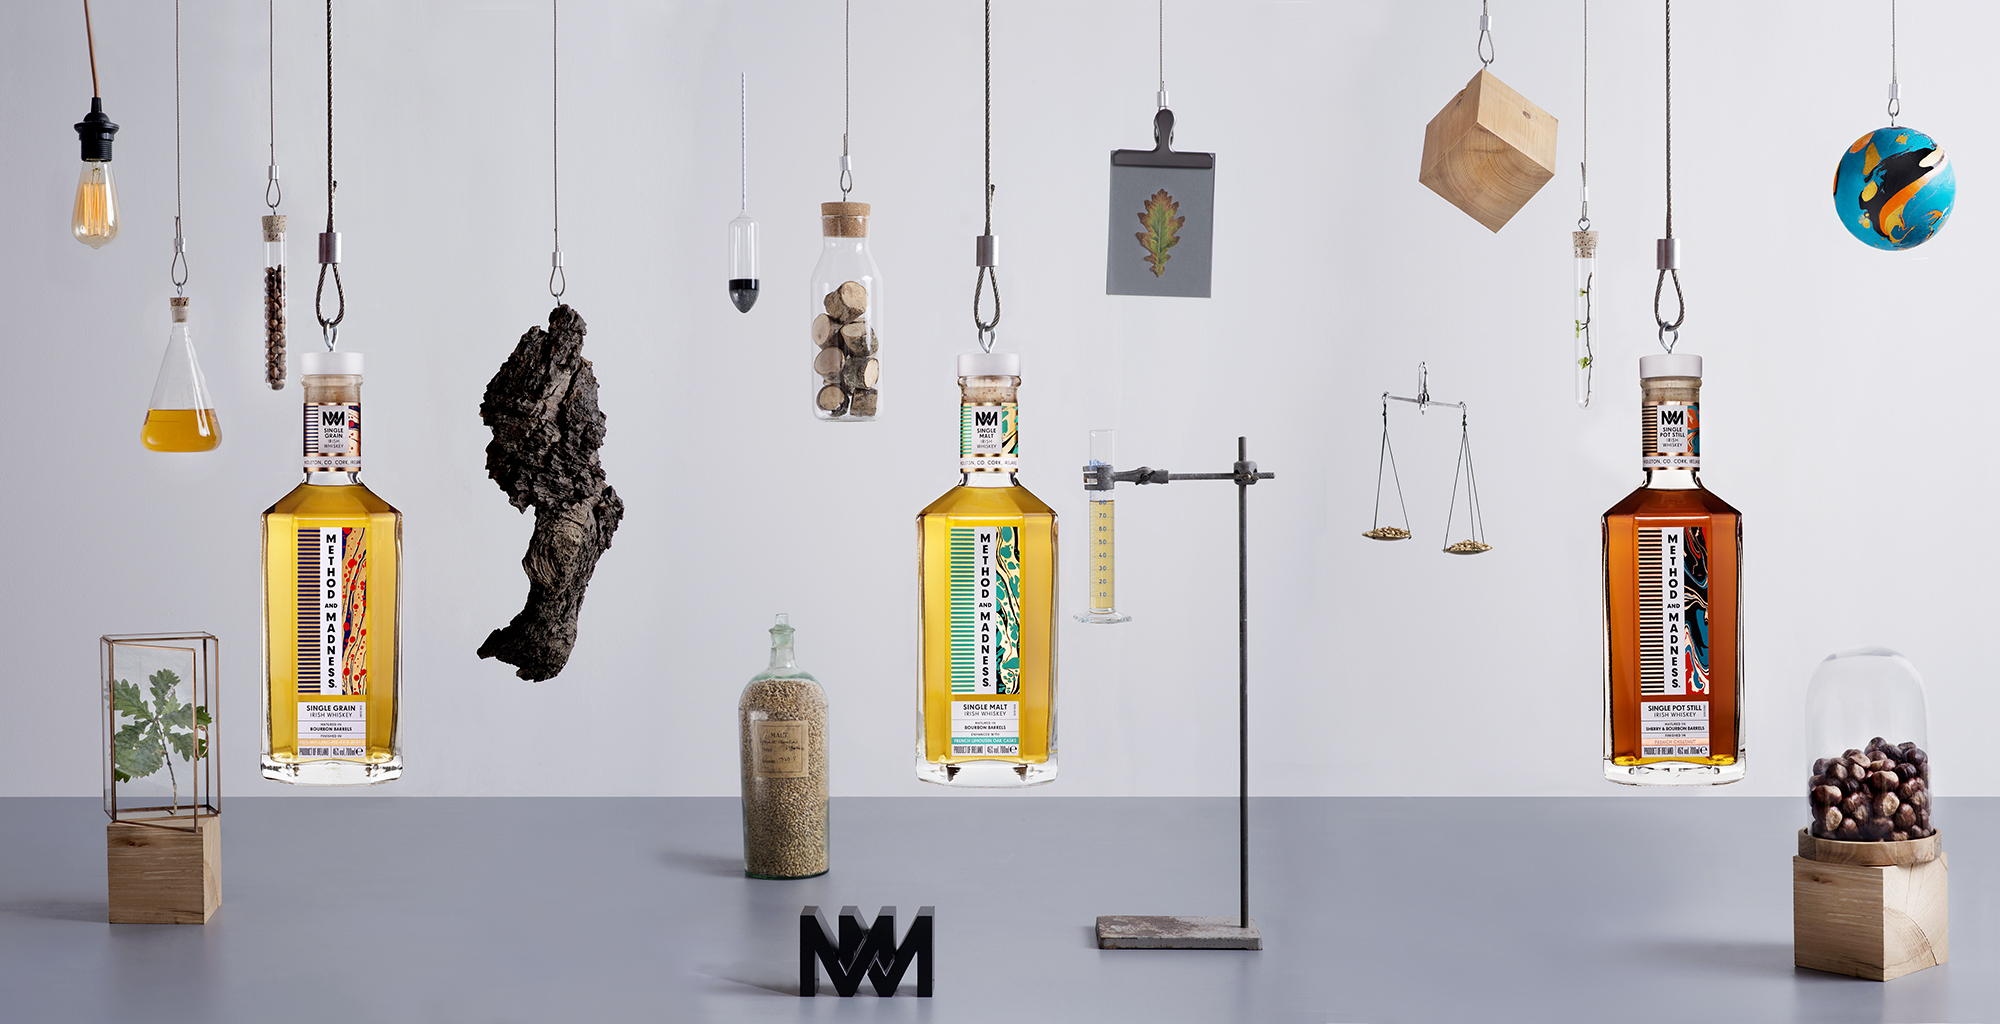 Pernod Ricard: METHOD AND MADNESS